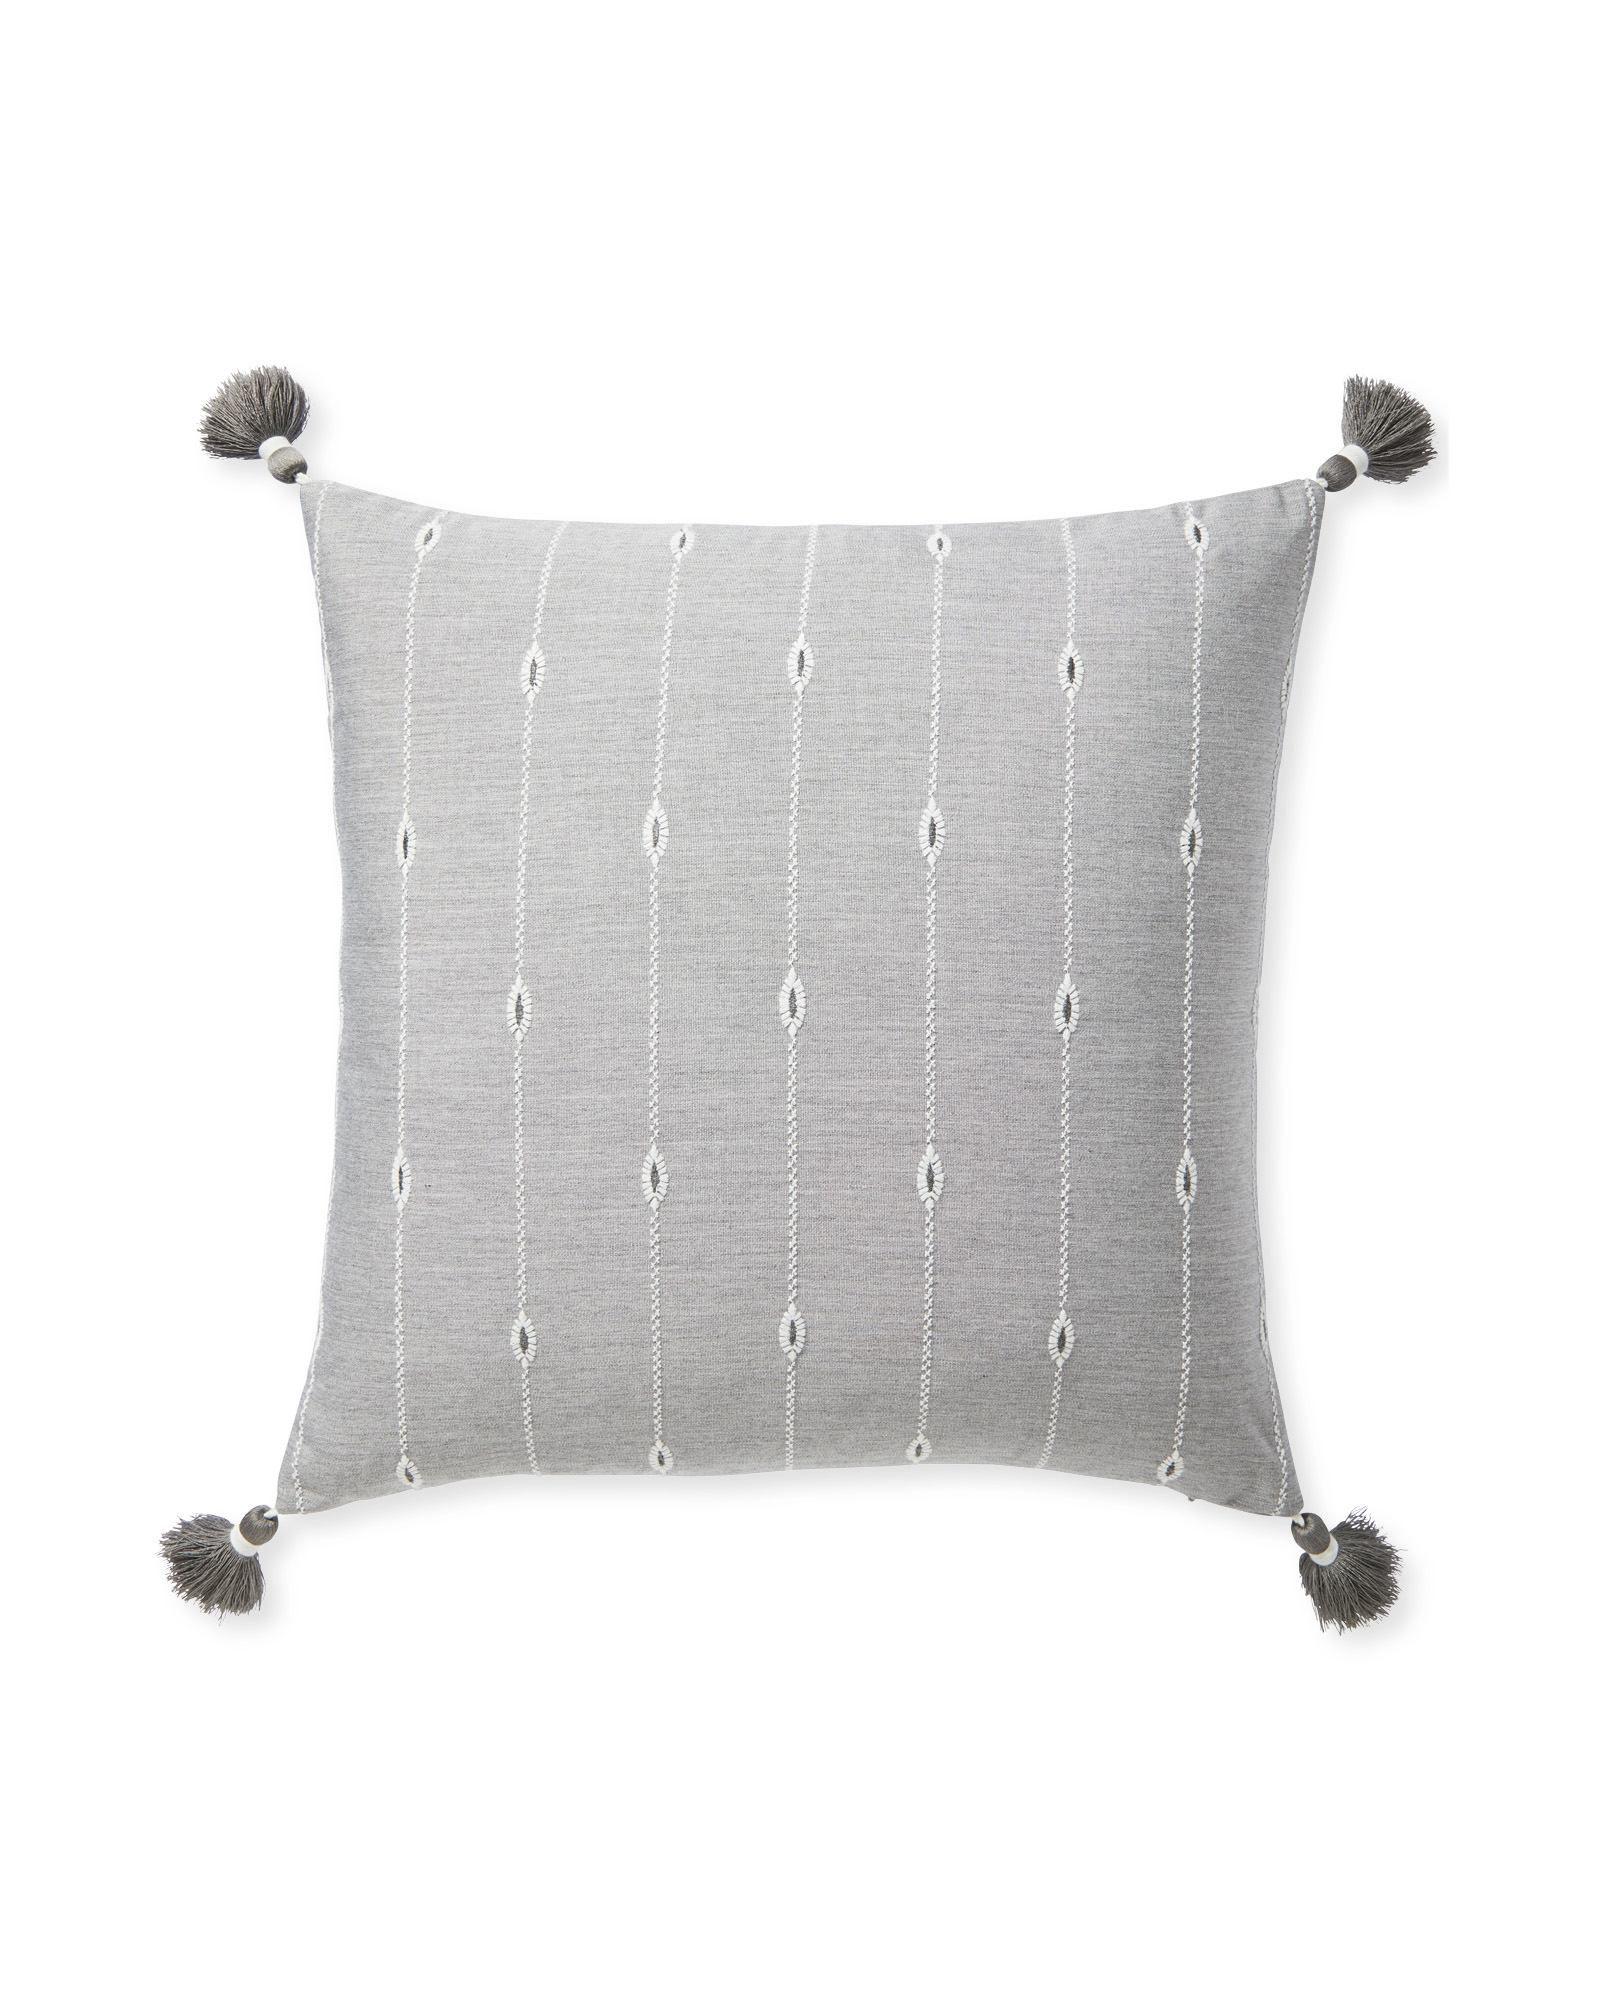 Rivoli Pillow Cover, Fog